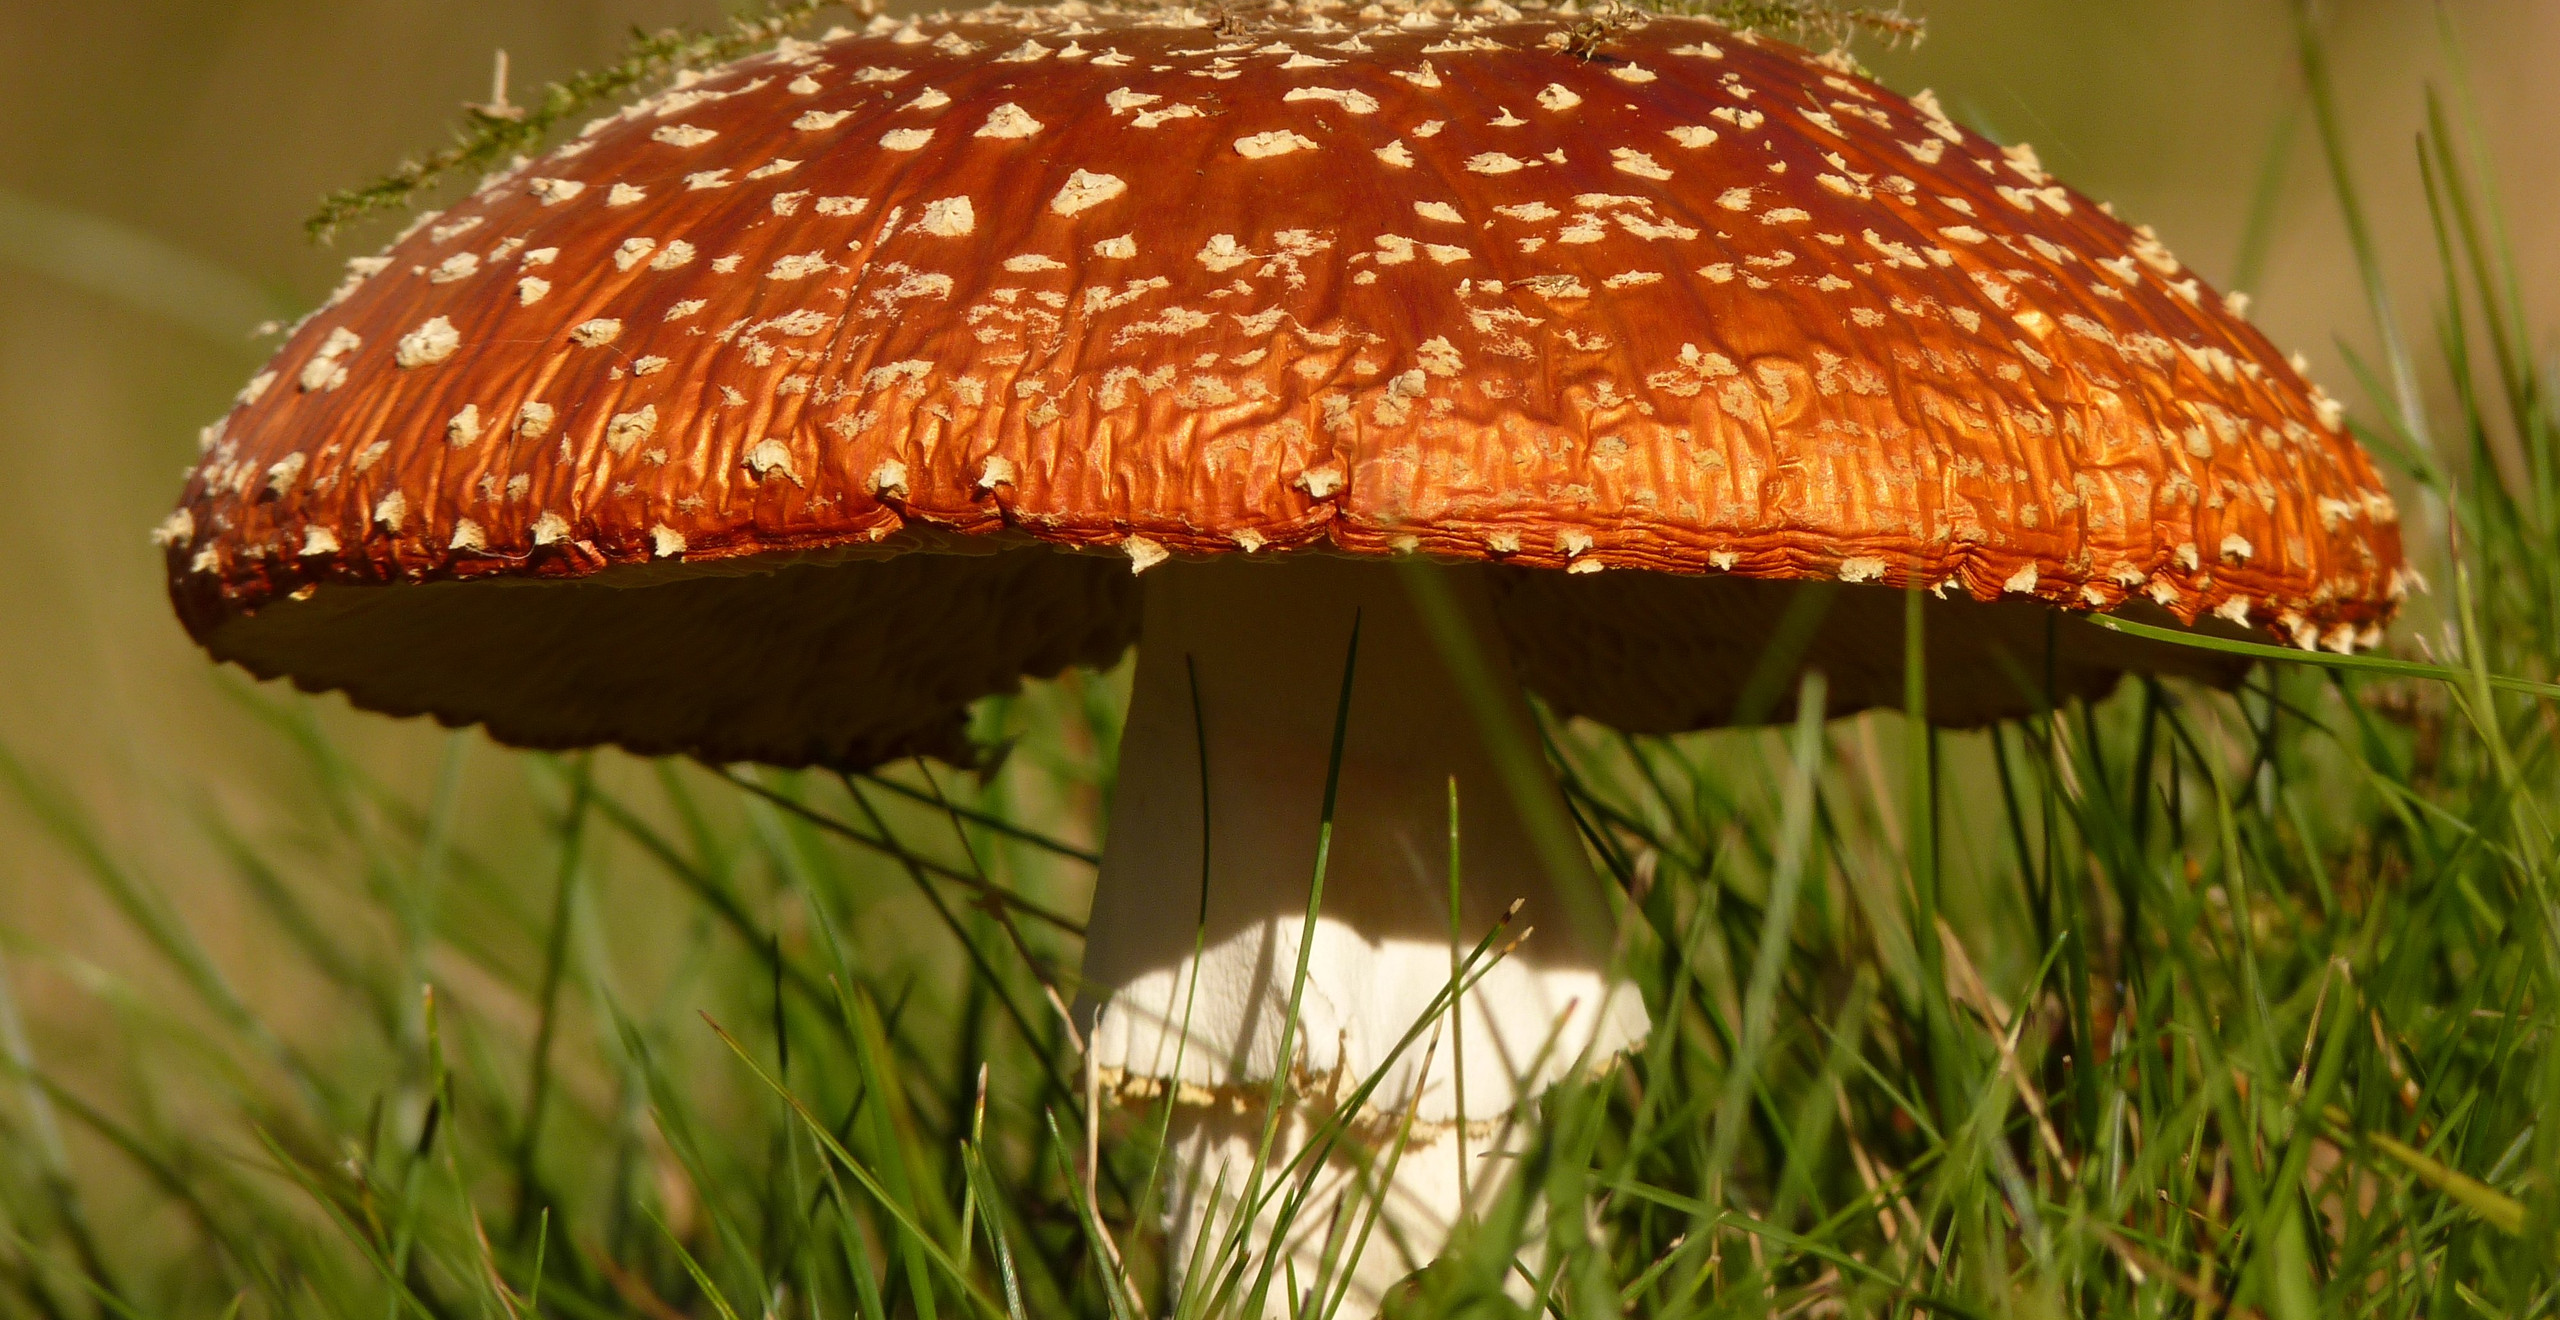 Mushrooms are one of the rich source of vitamin D